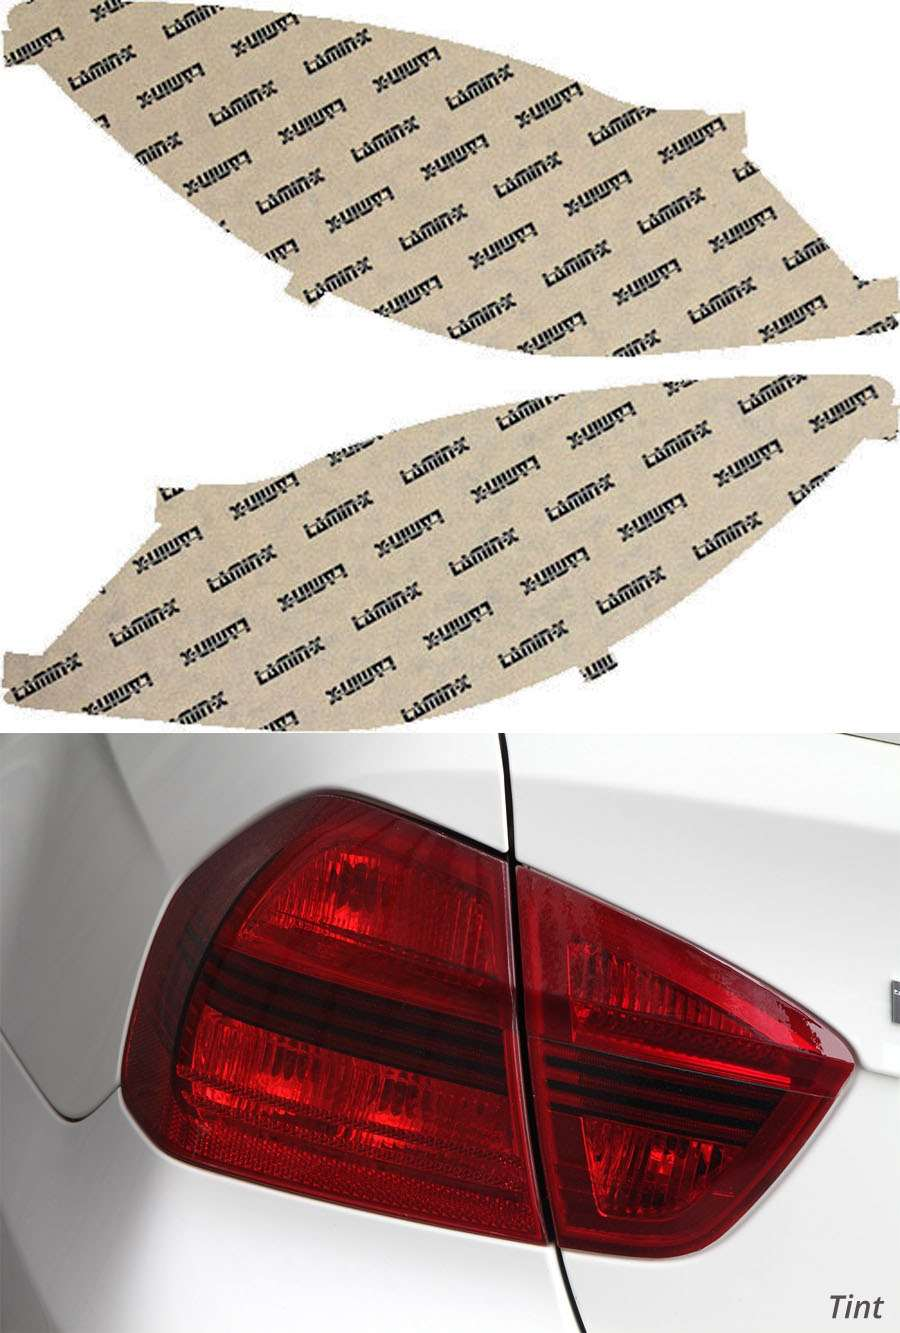 Lamin-X Tail Light Covers - Lamin-X BU203